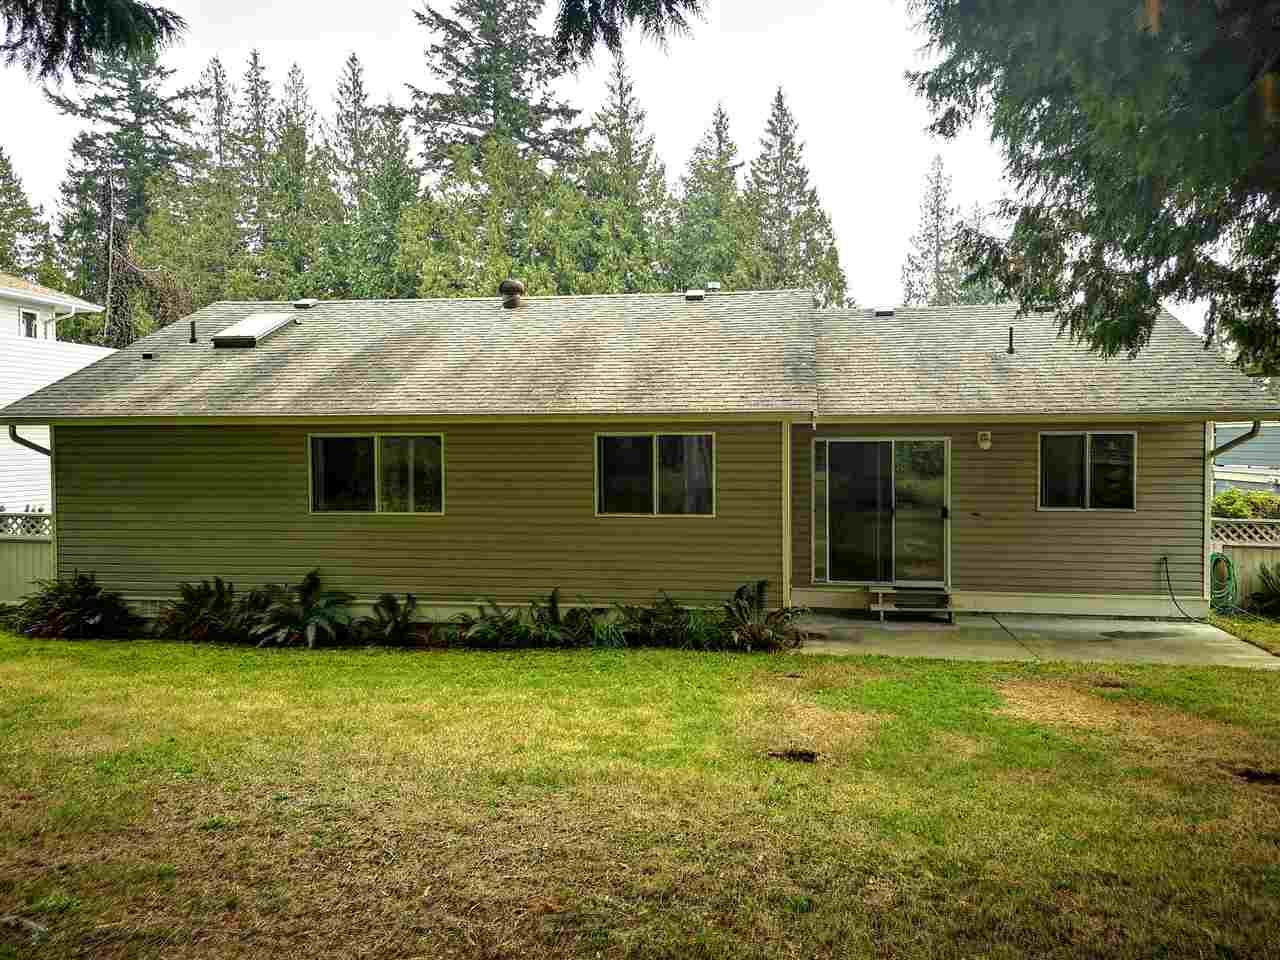 1448 BONNIEBROOK HEIGHTS ROAD - Gibsons & Area House/Single Family for sale, 3 Bedrooms (R2482137) - #17